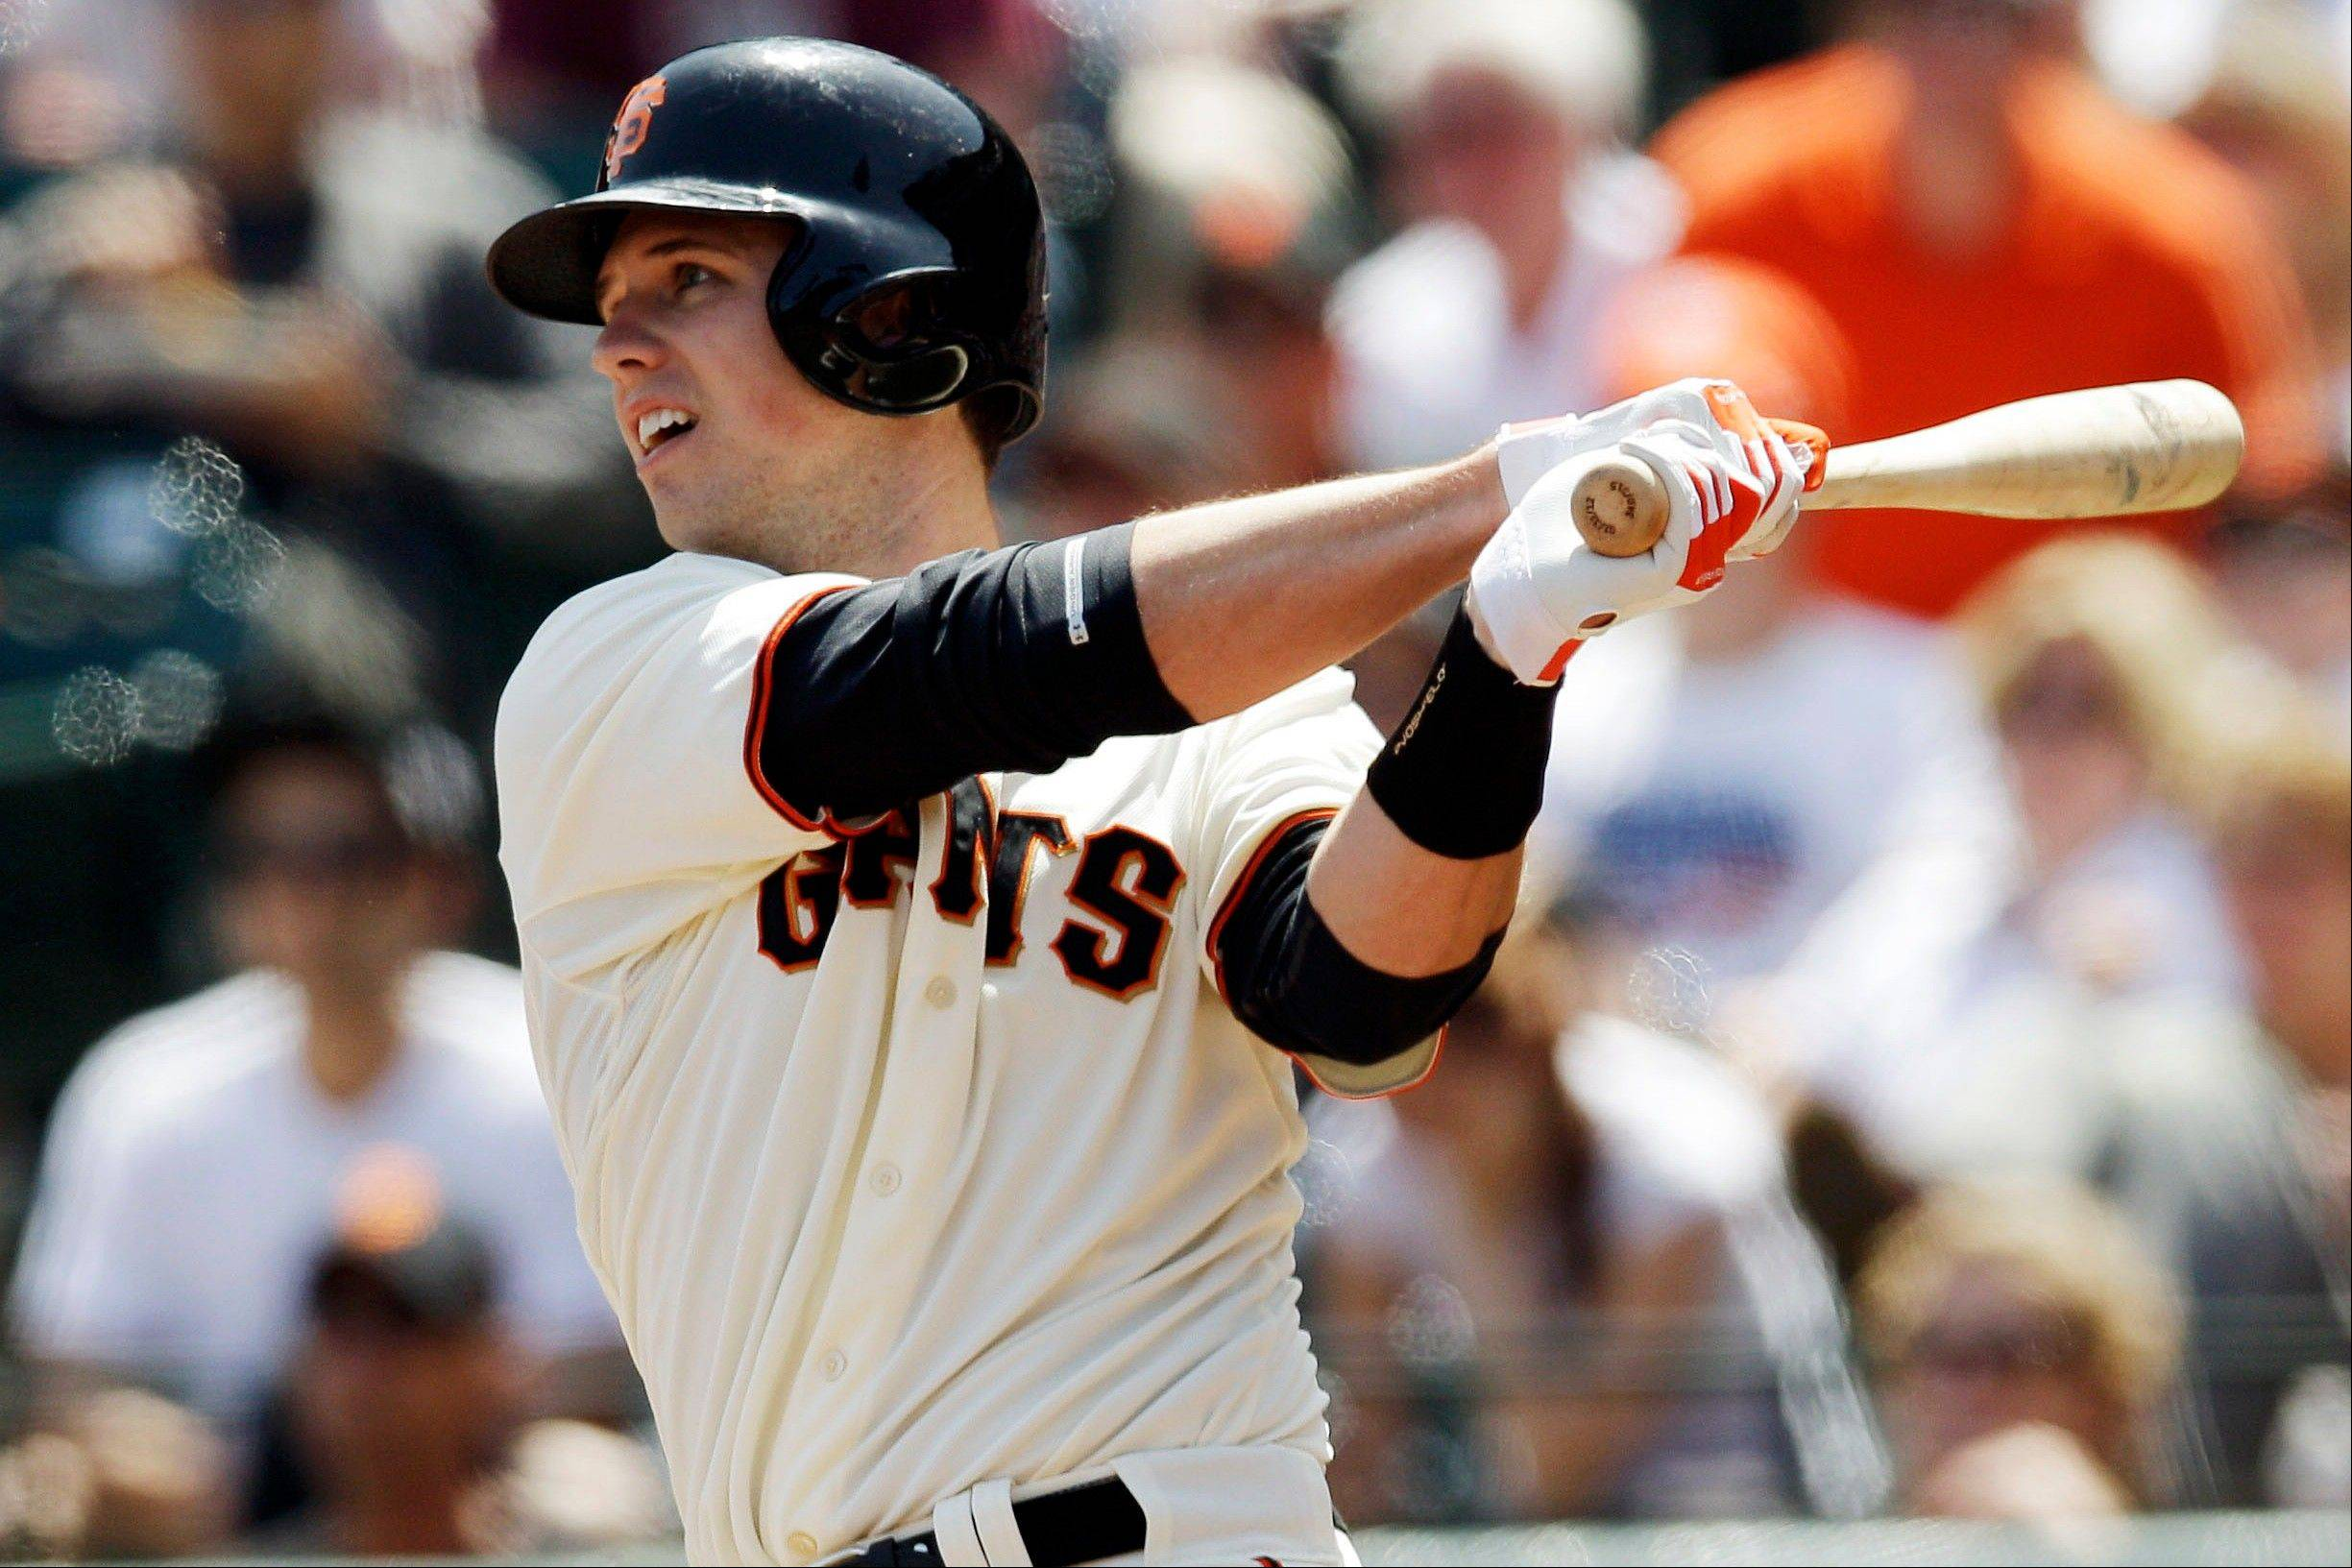 San Francisco Giants catcher Buster Posey has been voted the NL Most Valuable Player after returning from a devastating leg injury and becoming the first catcher in 70 years to win the league's batting title.